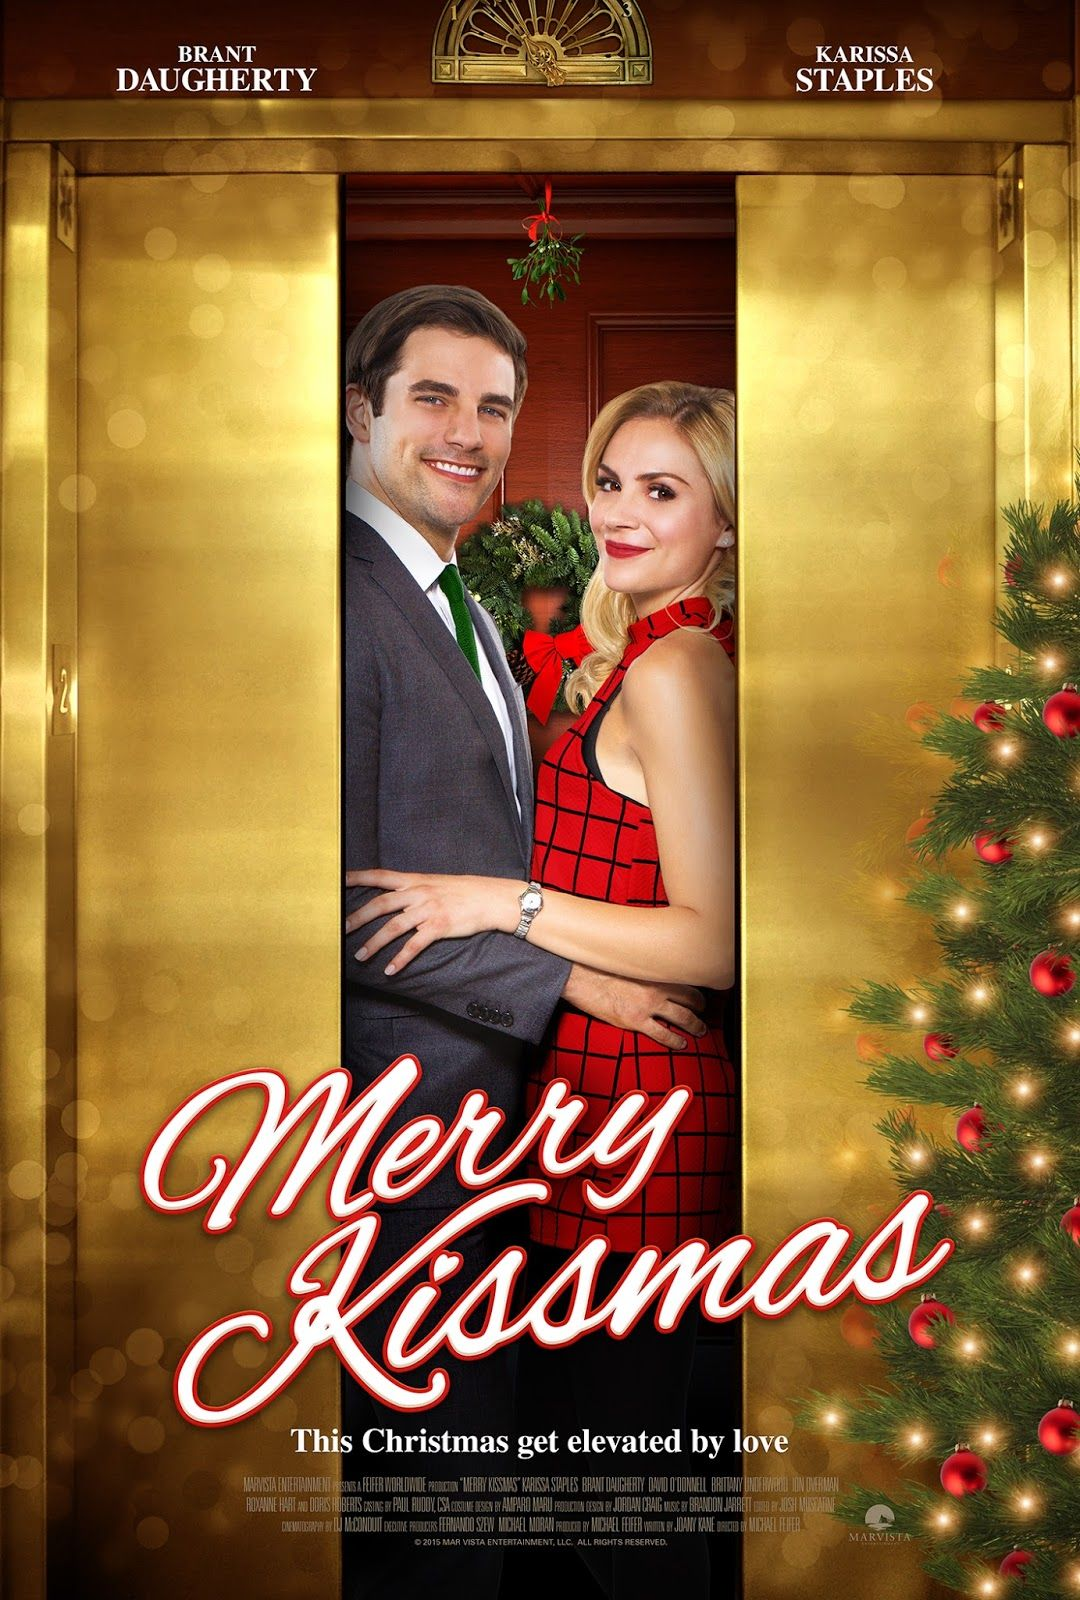 Merry Kissmas starring Karissa Lee Staples and Brant Daugherty ...